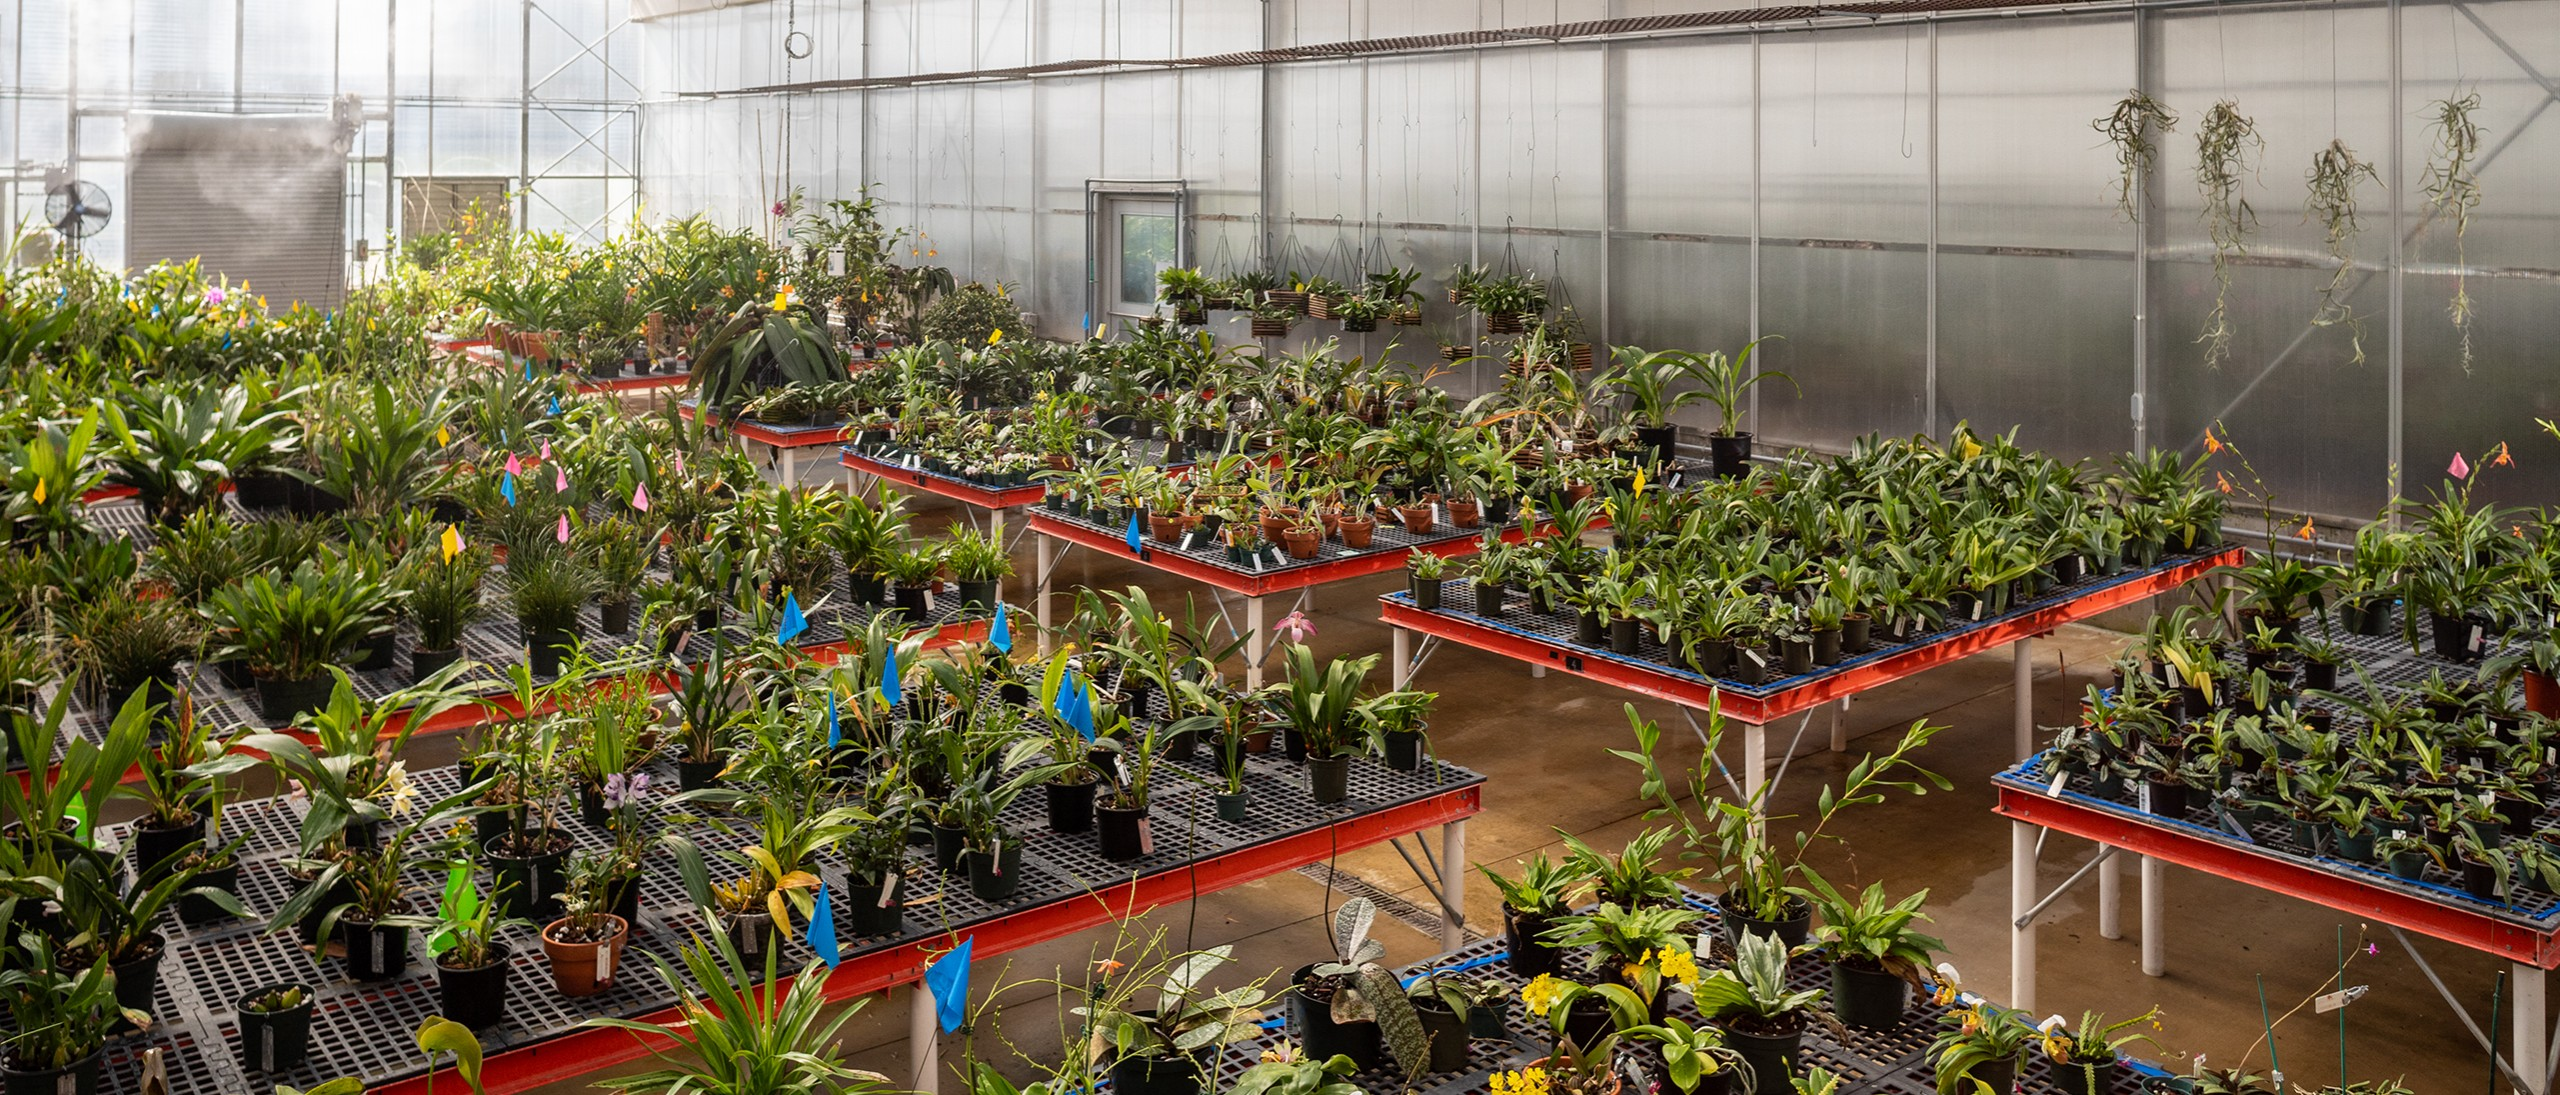 Orchids on many benches in greenhouse being misted